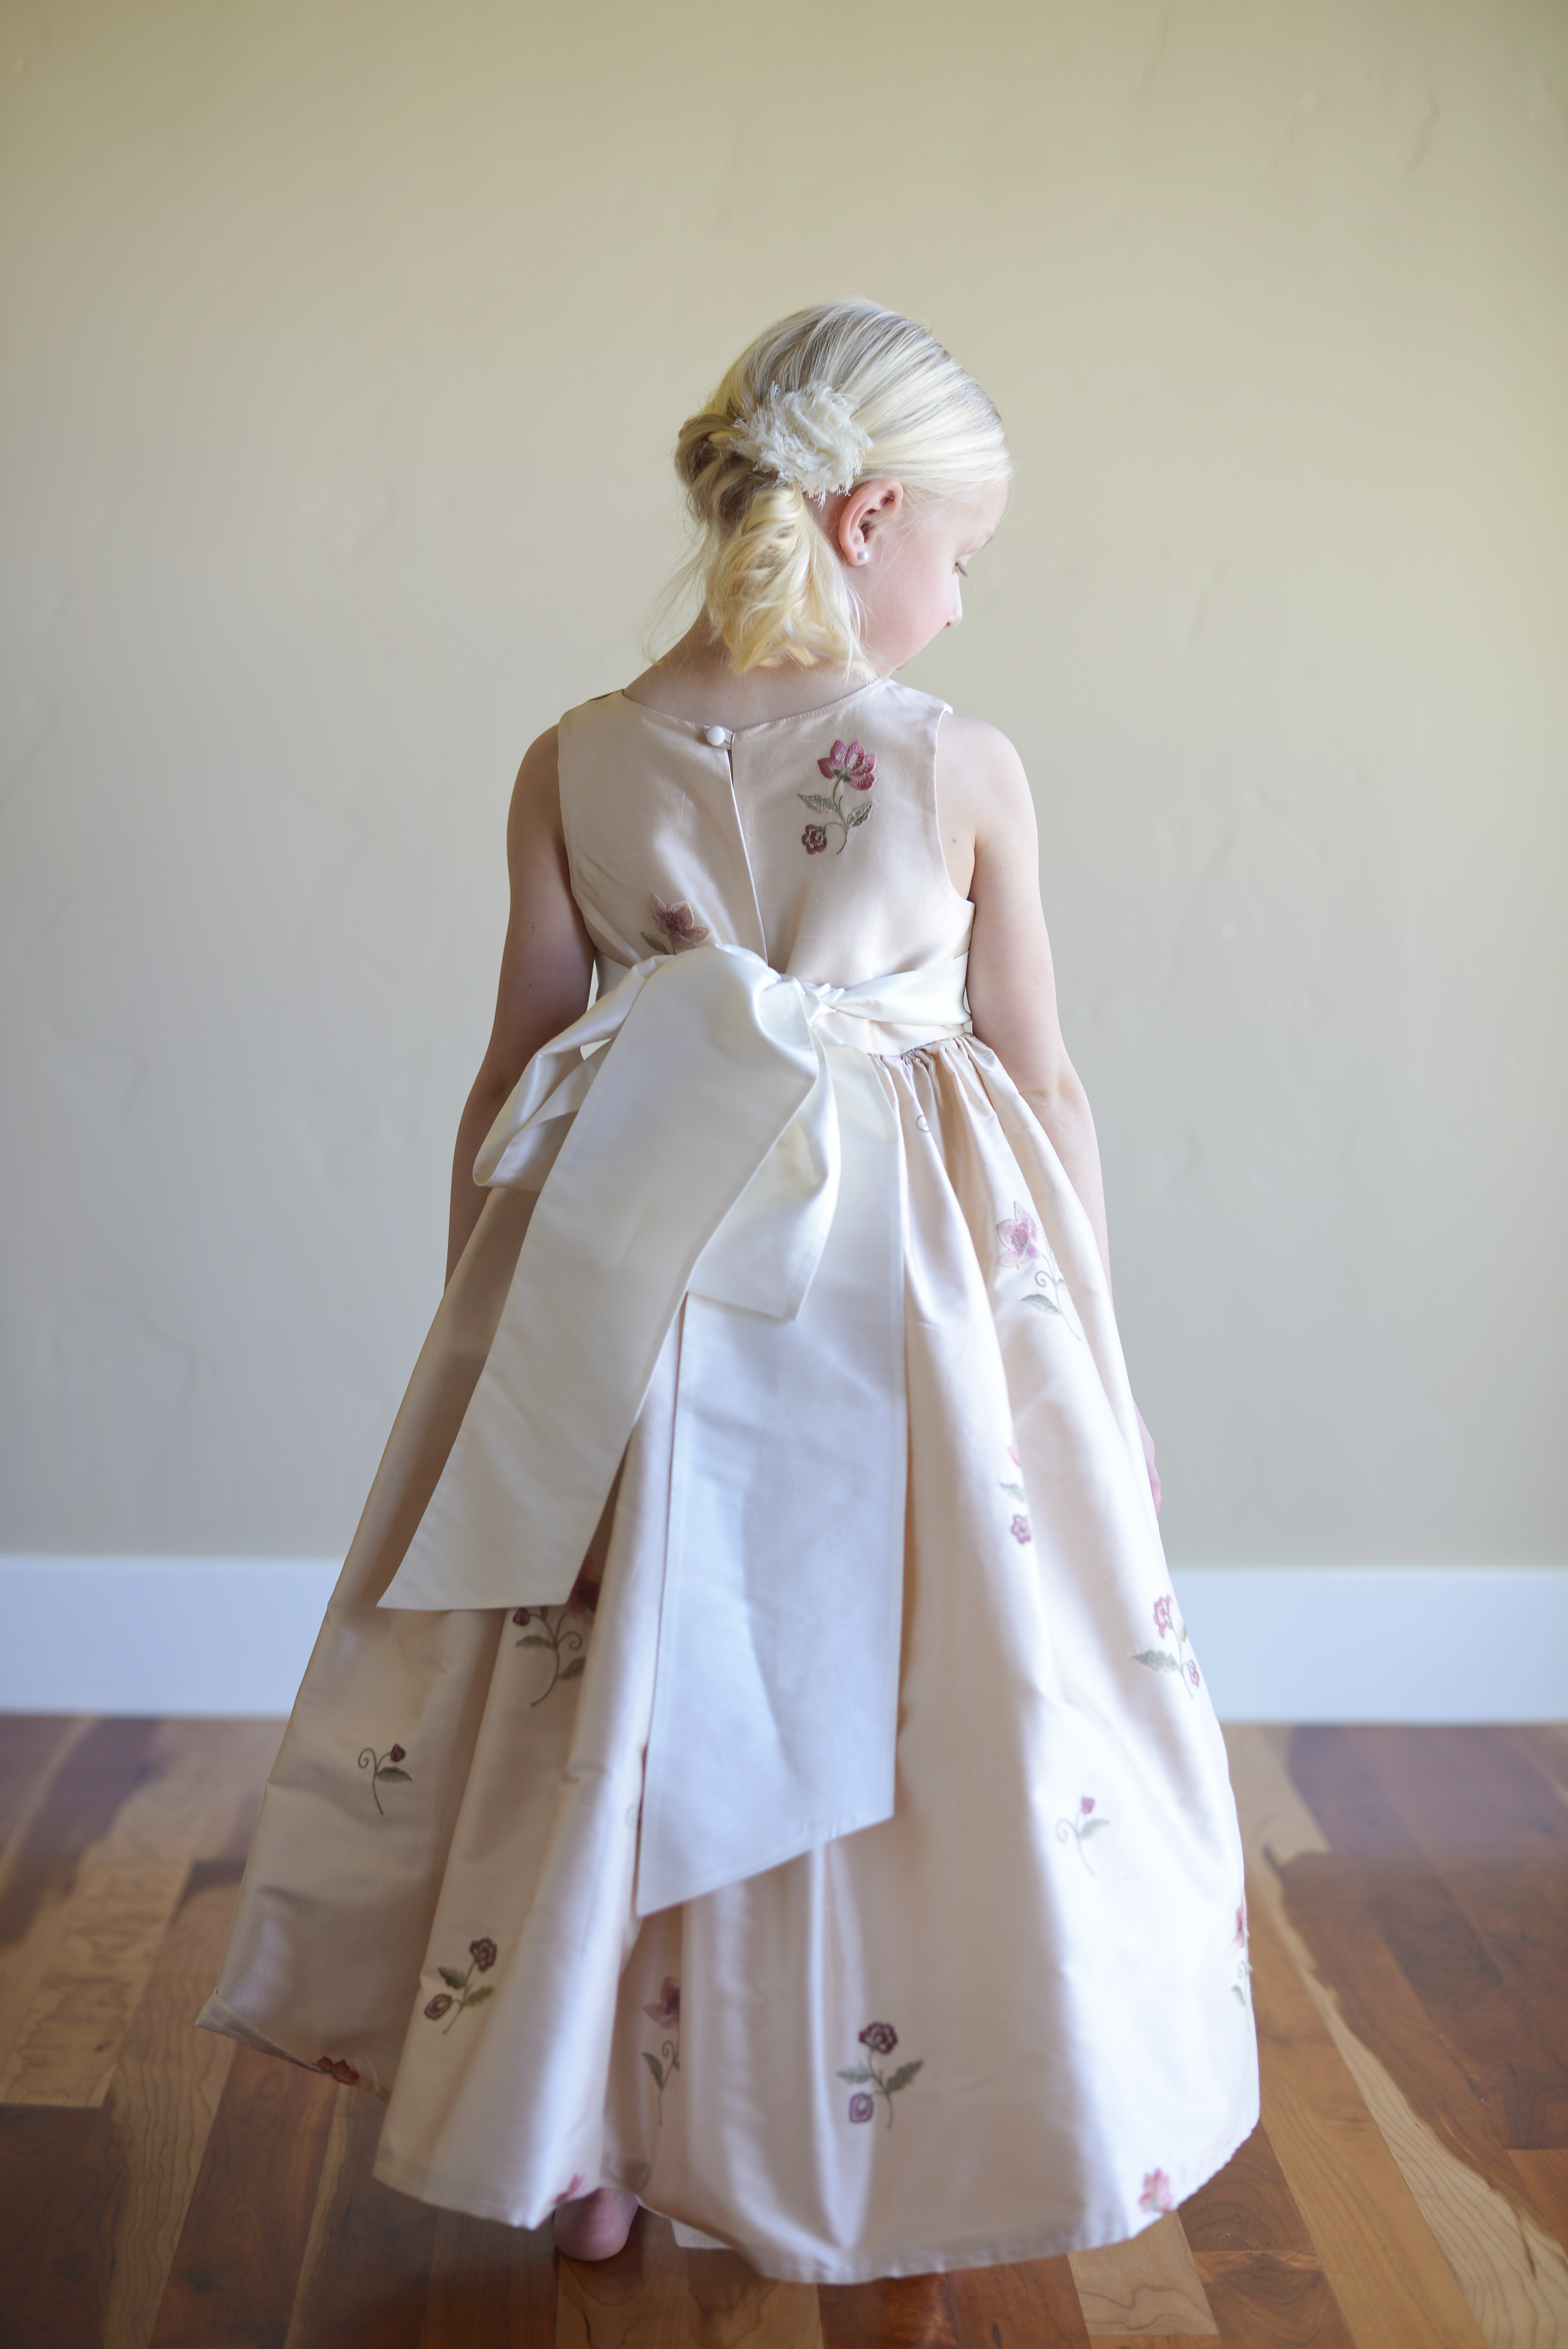 c6b5fca4541 The Blush rose flower girl dress is a pure silk dress embroidered with  pretty pink flowers.